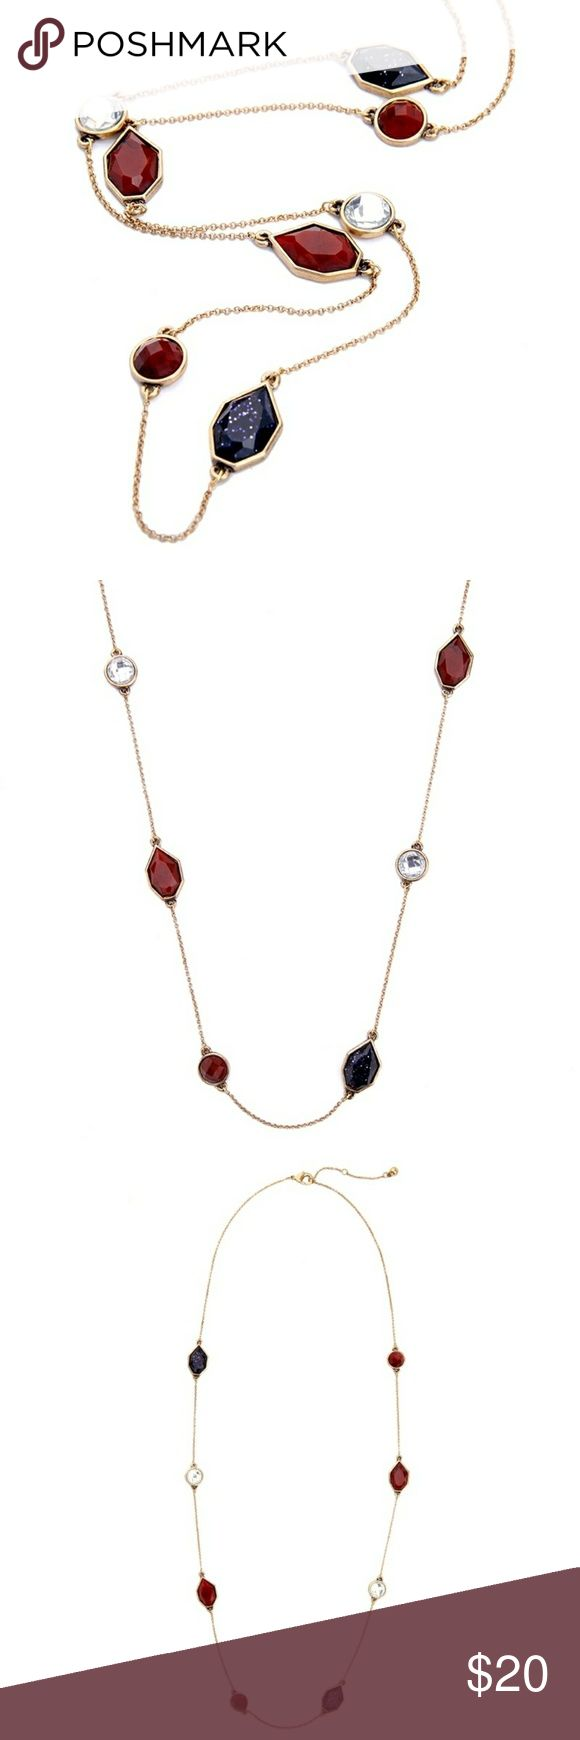 """Garnet Red Blue Rhinestone Chain Station Necklace Collection Name: """"Sparkler""""is also known as """"Shades of the Unknown"""" is part of the Gold Collection Metal: Yellow Gold Plated Bronze Brass Copper Plated Base Metal: Antique Gold Plated Stone Shape: Geometric Chevron Irregular Round cut Stone: Rhinestone Multi-Stone Diamante Diamonique Crystal (Resin) Design: Vintage Nouveau Art Deco Era Theme: Patriot American Flag Color: blood red garnet & navy blue clear Necklace length: 34 inches…"""